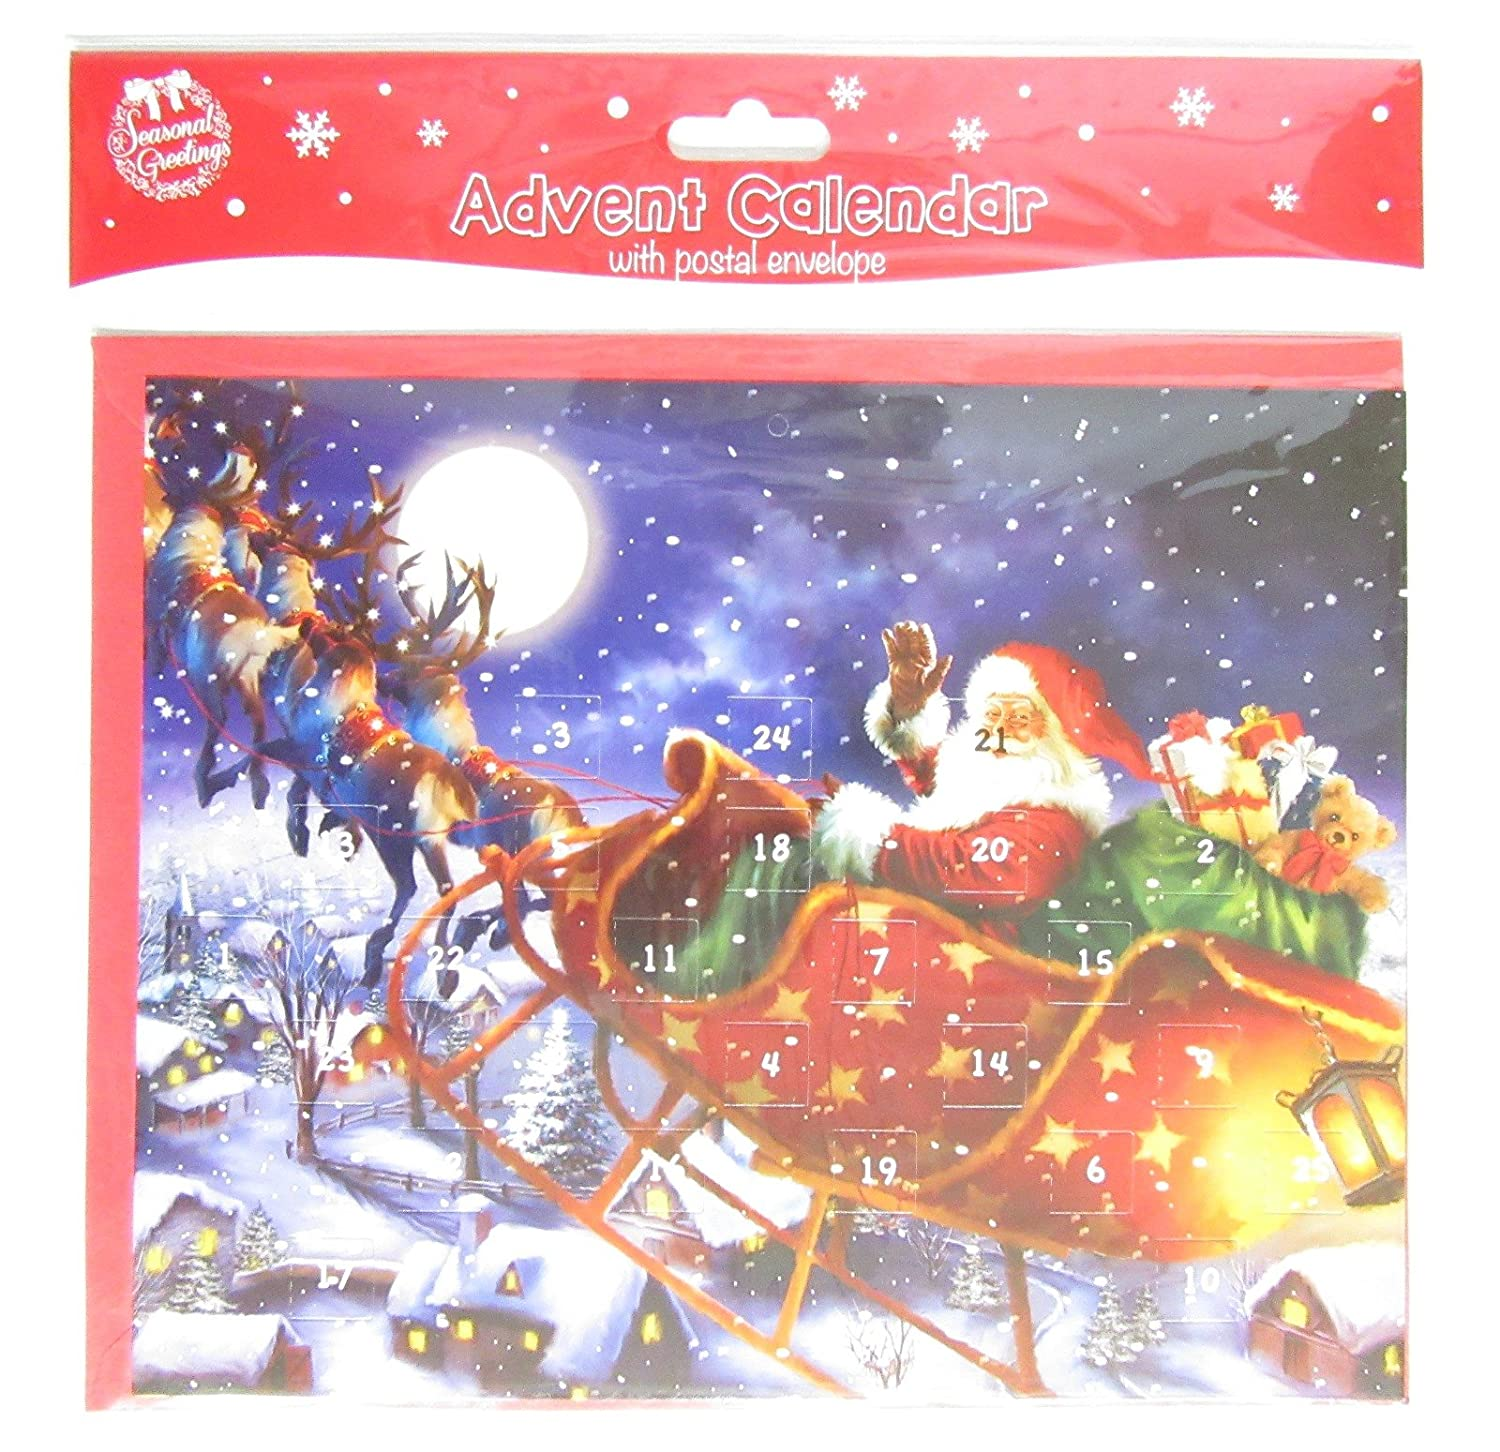 Traditional Christmas Advent Calendar 24 Windows to Open - Santa with Sleigh Tallon Int Ltd